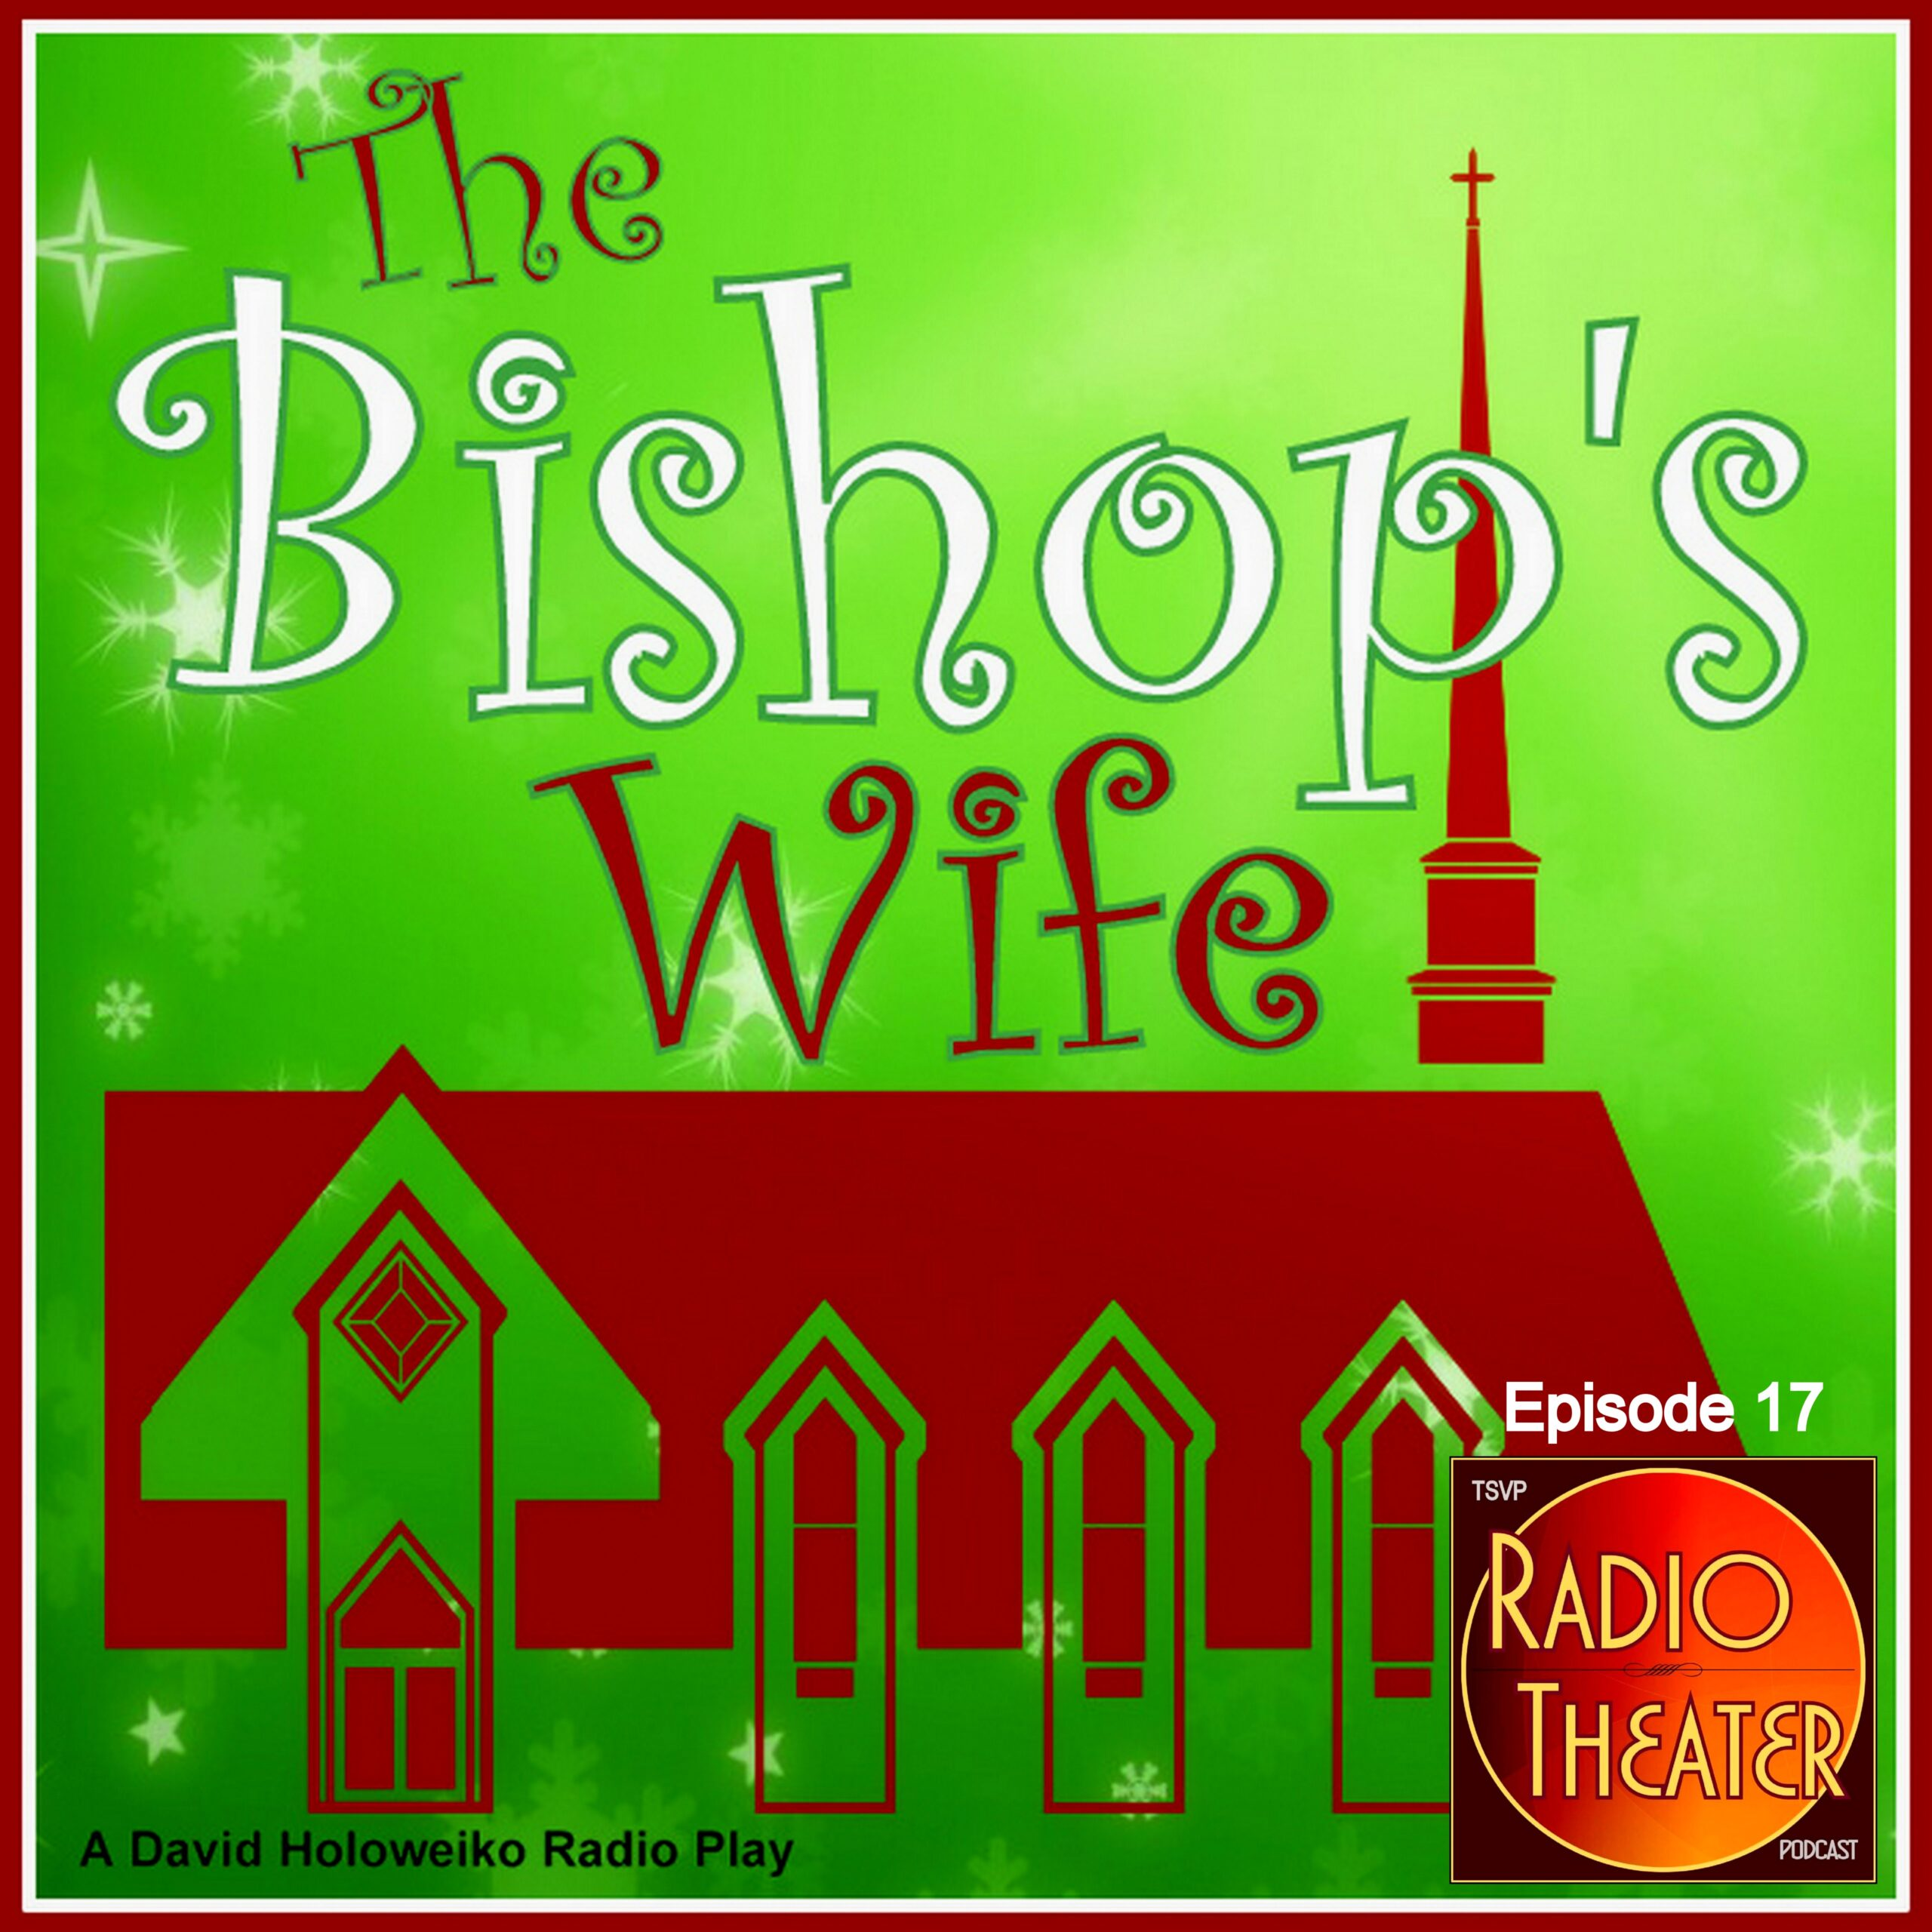 RTP17 - THE BISHOP'S WIFE